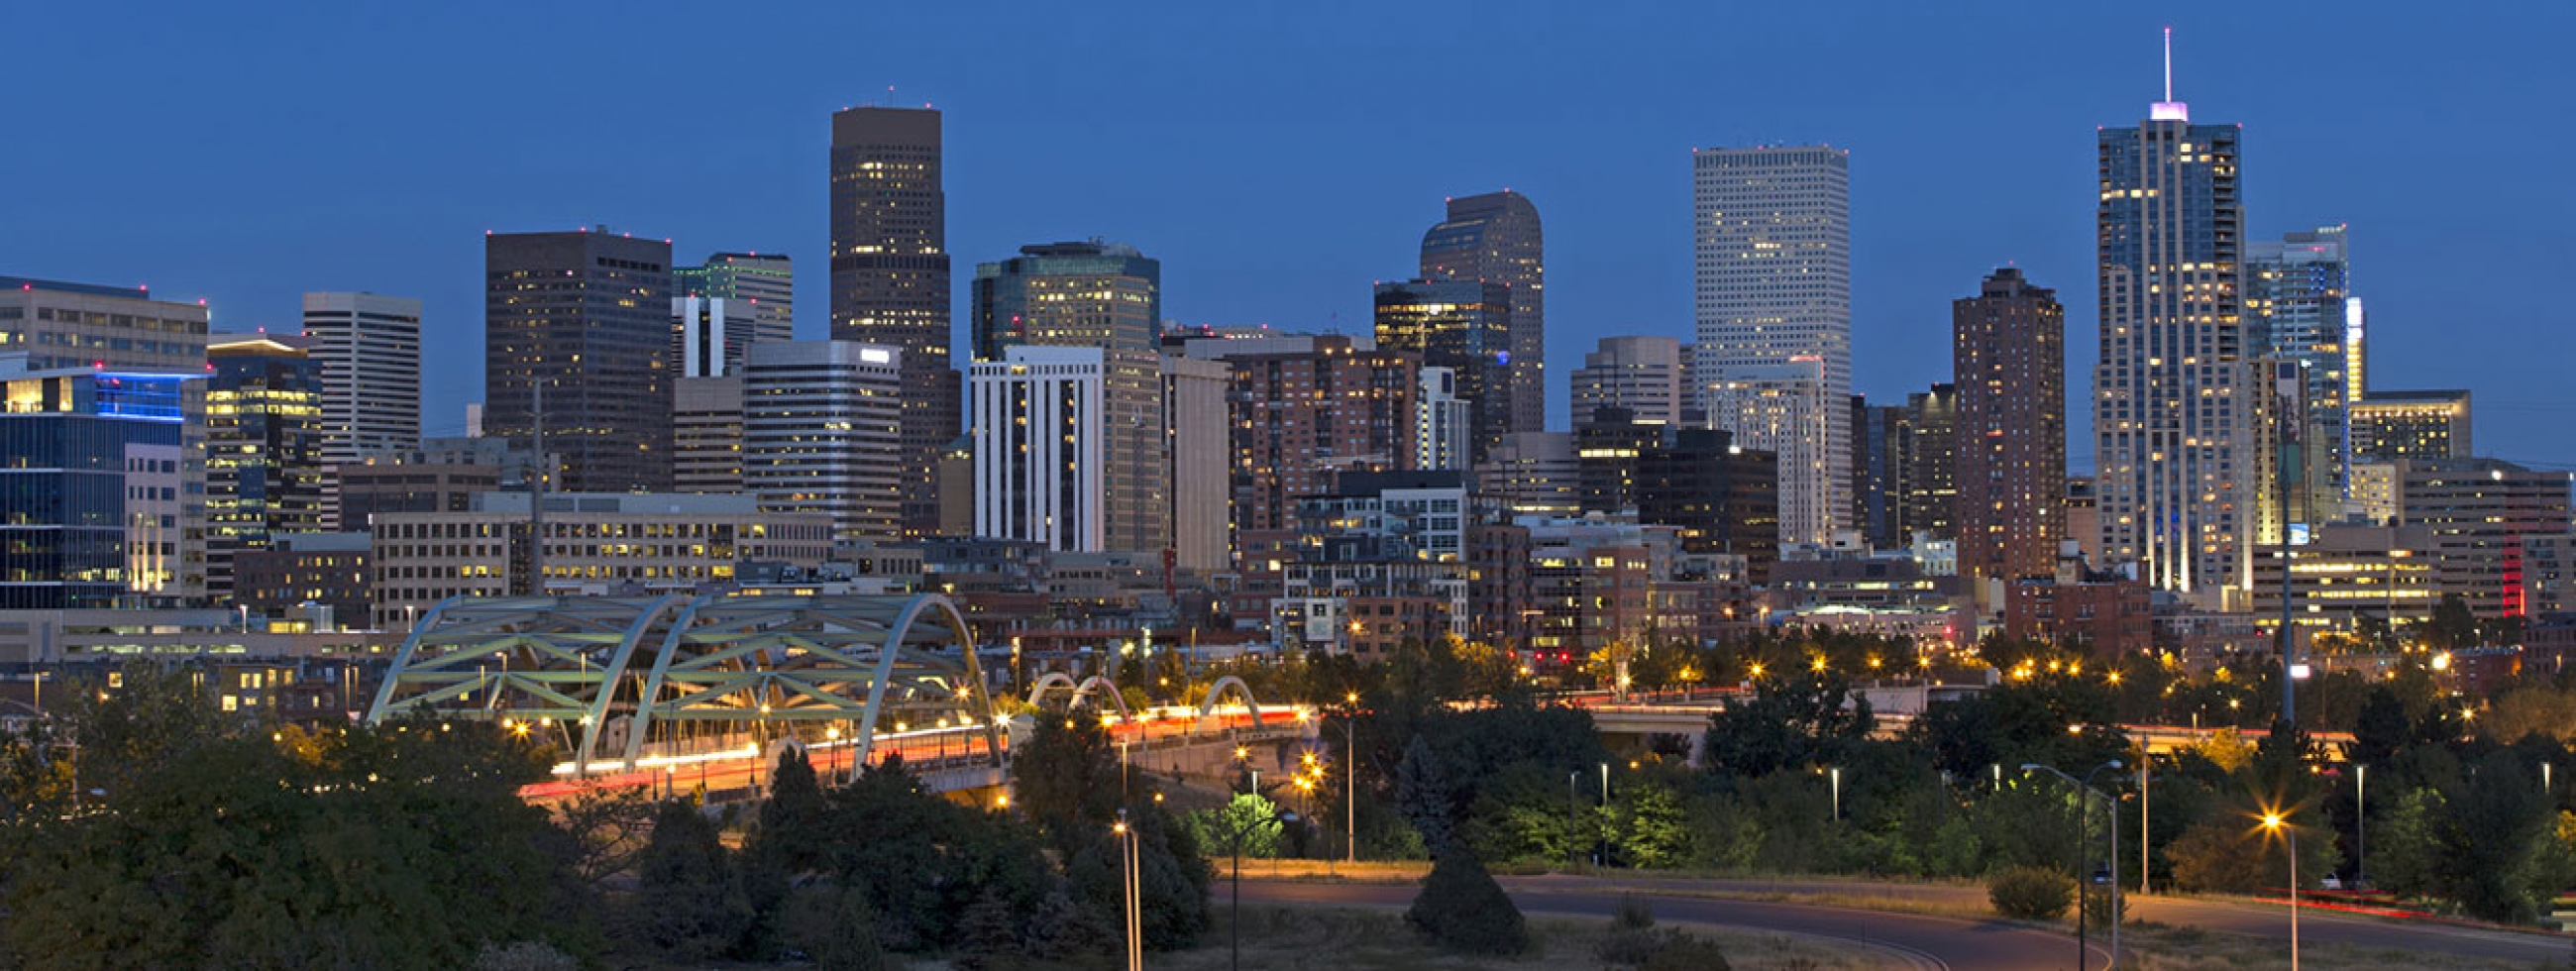 Based in Denver – Serving Client Needs Throughout Colorado